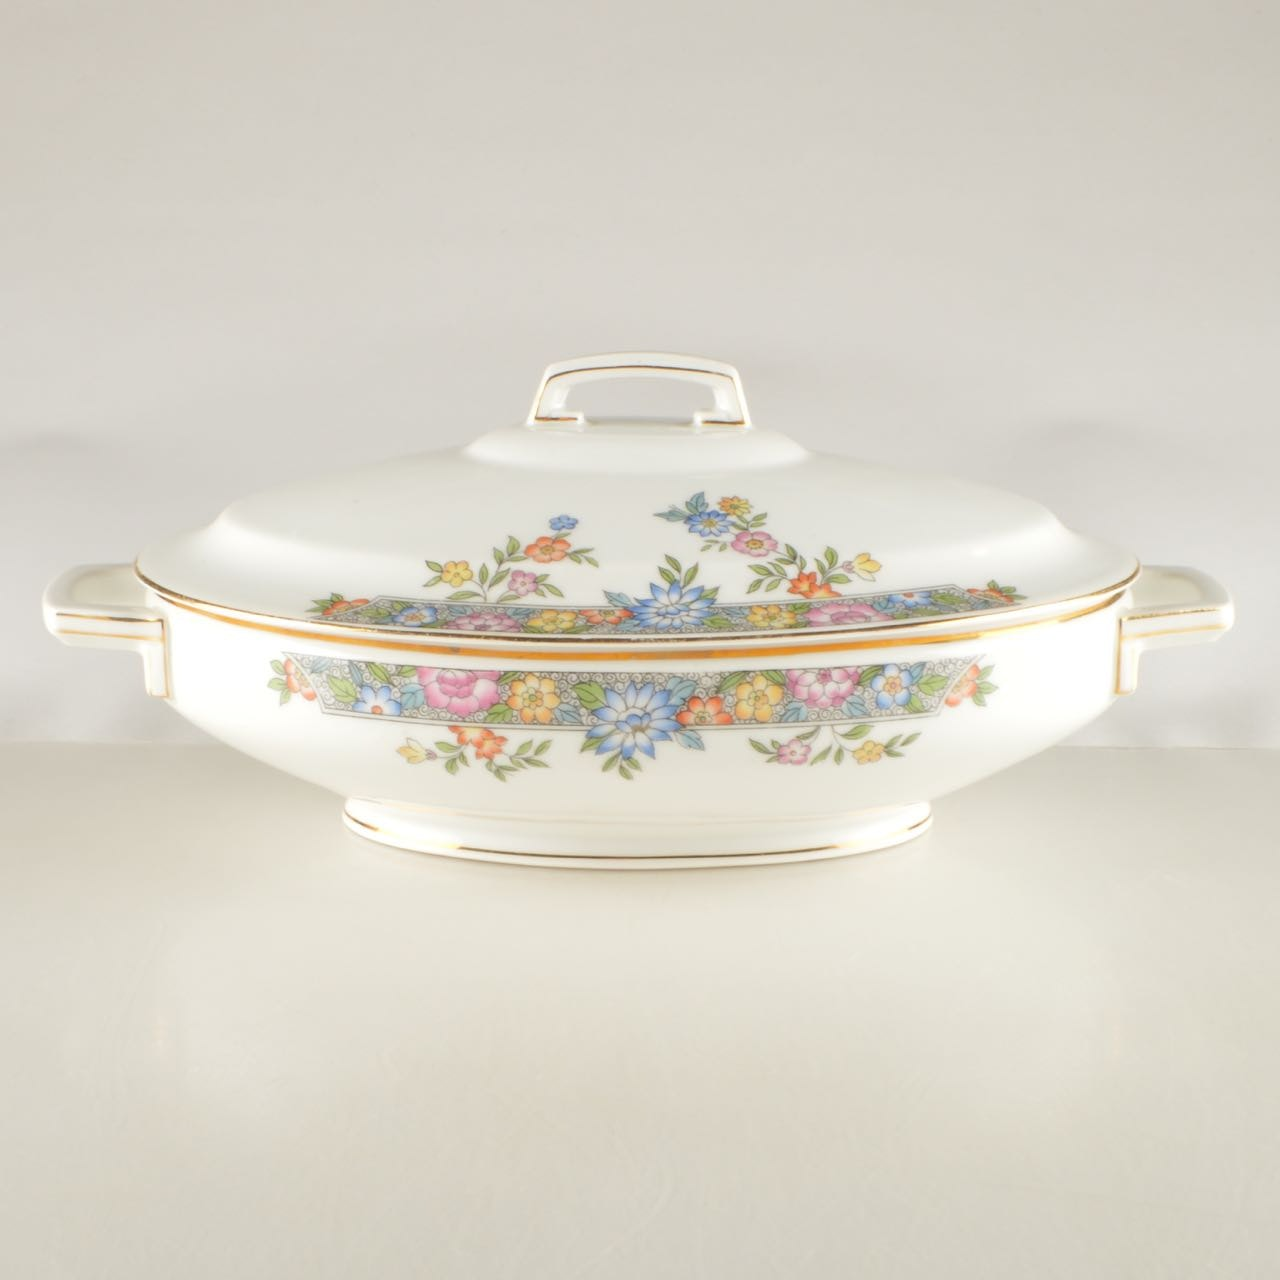 "Hutschenreuther Porcelain Covered Vegetable Dish in ""Vernon"""